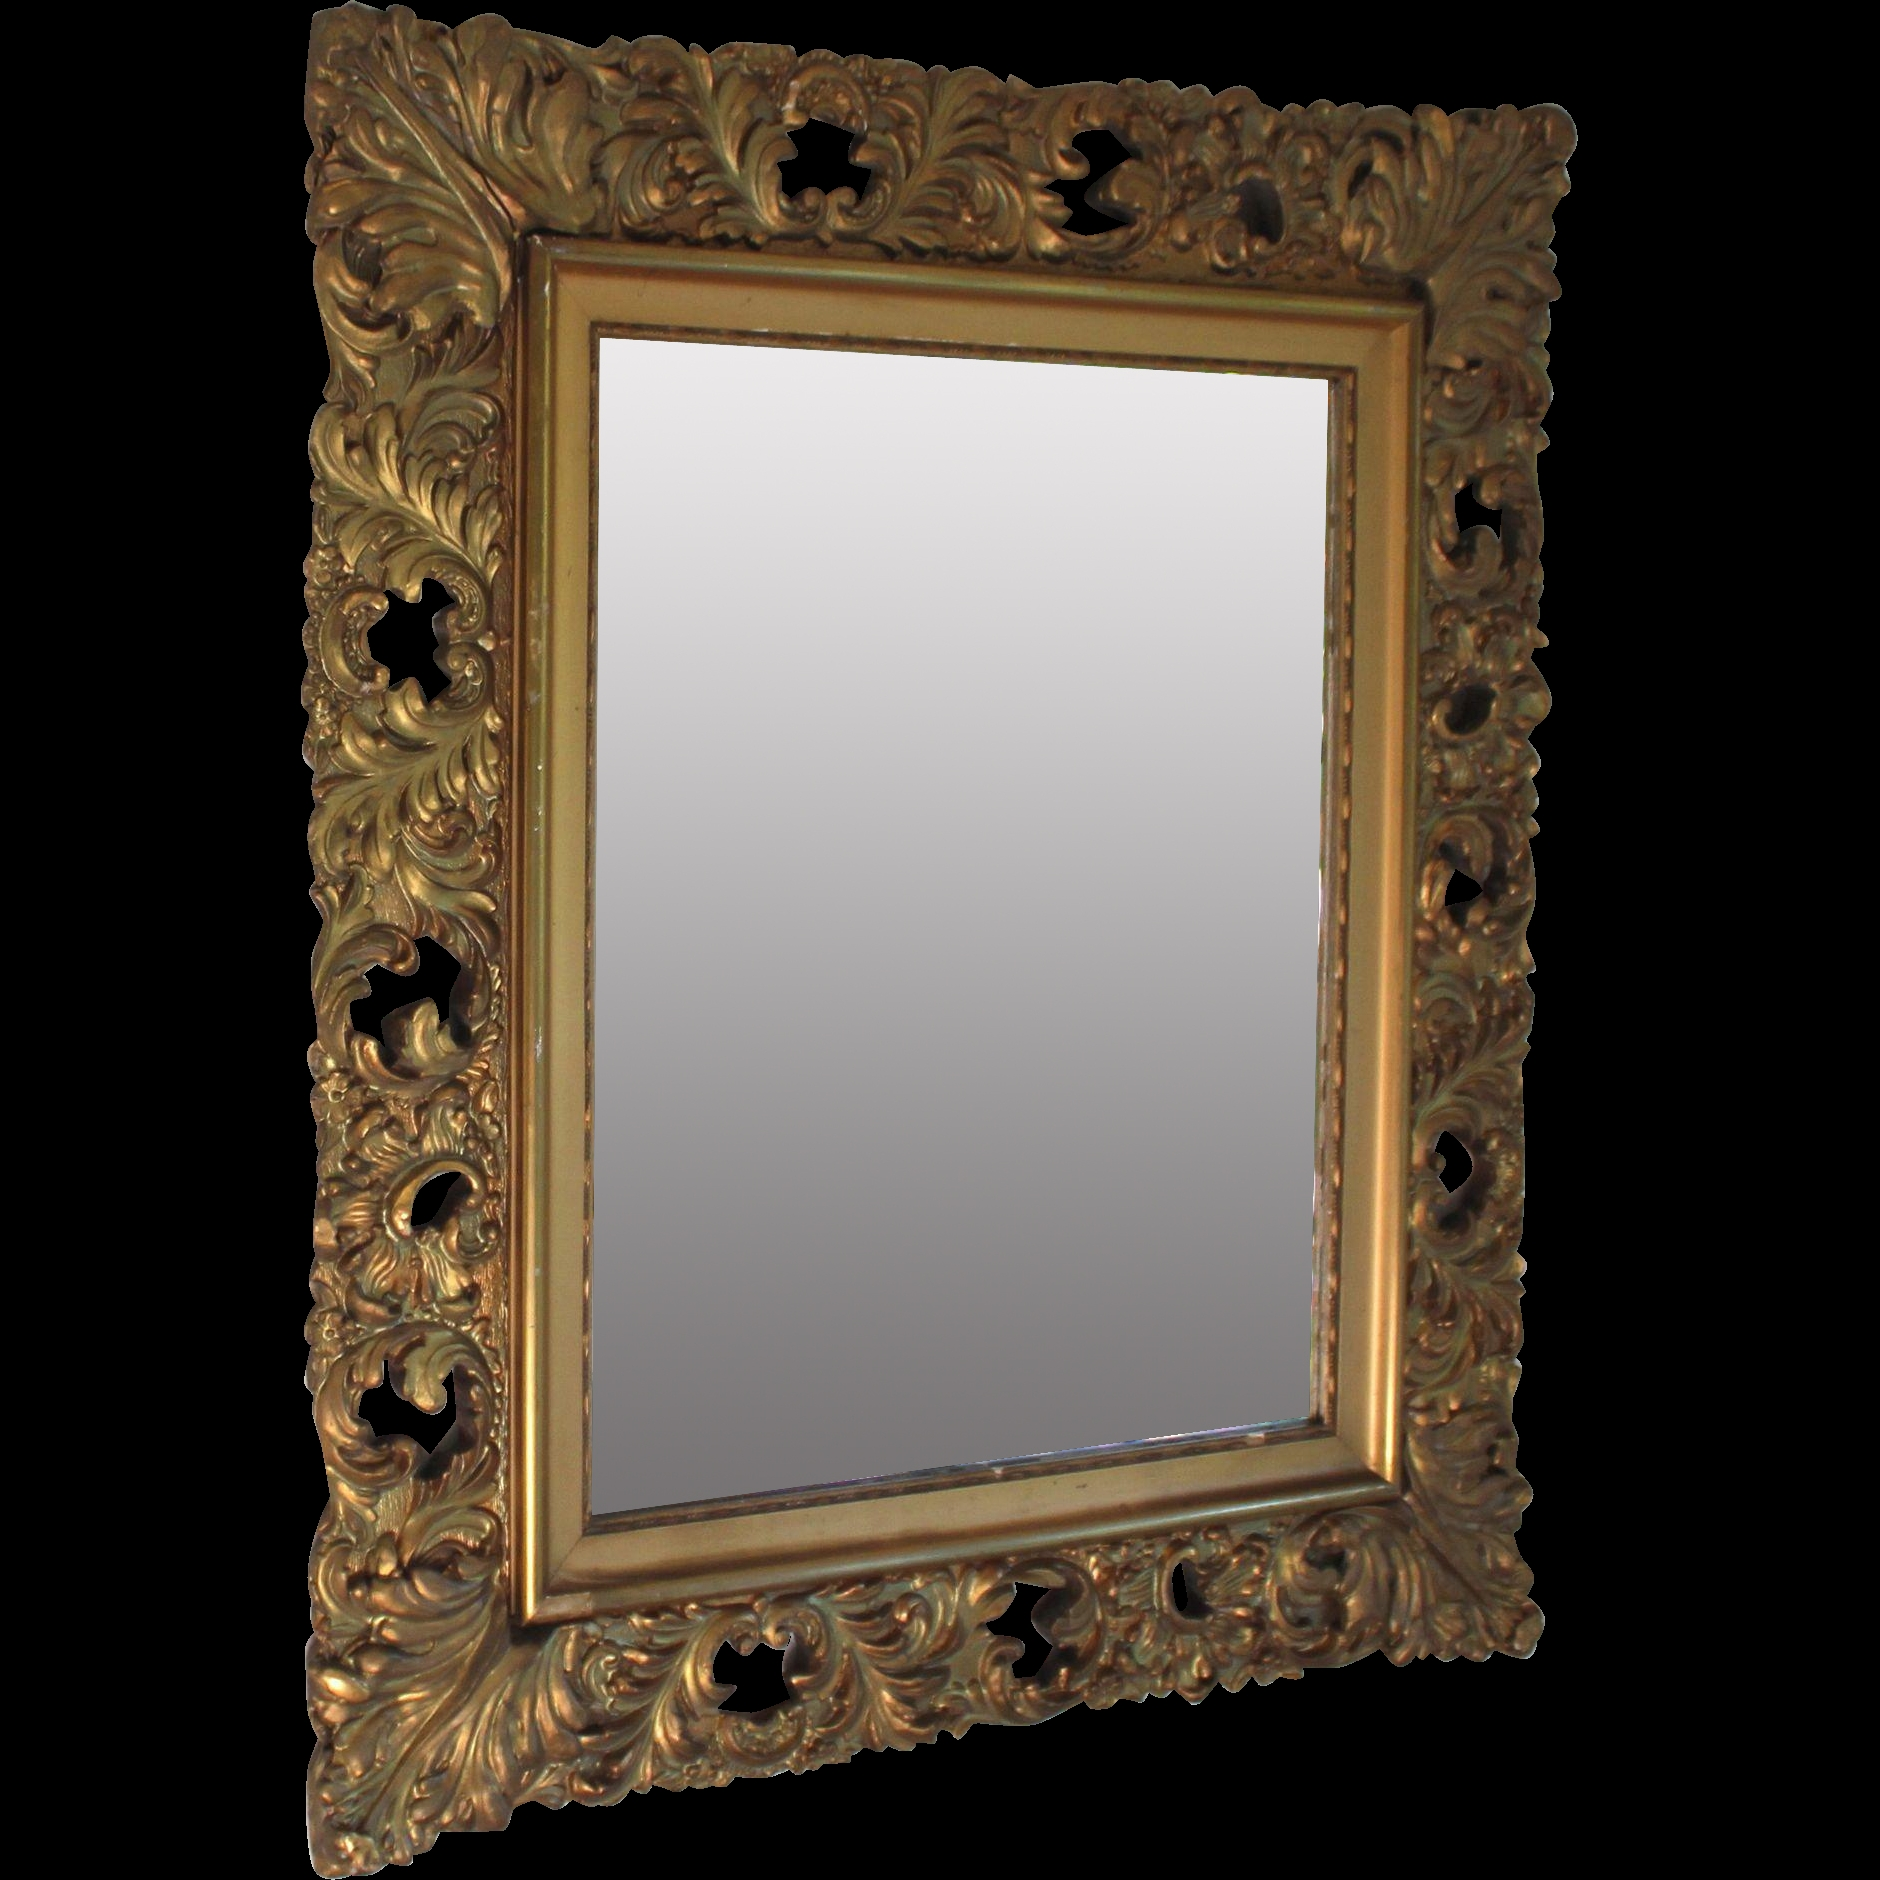 Antique Italian Gilt Wood Florentine Mirror From Within Antique Gilt Mirrors (Image 8 of 15)